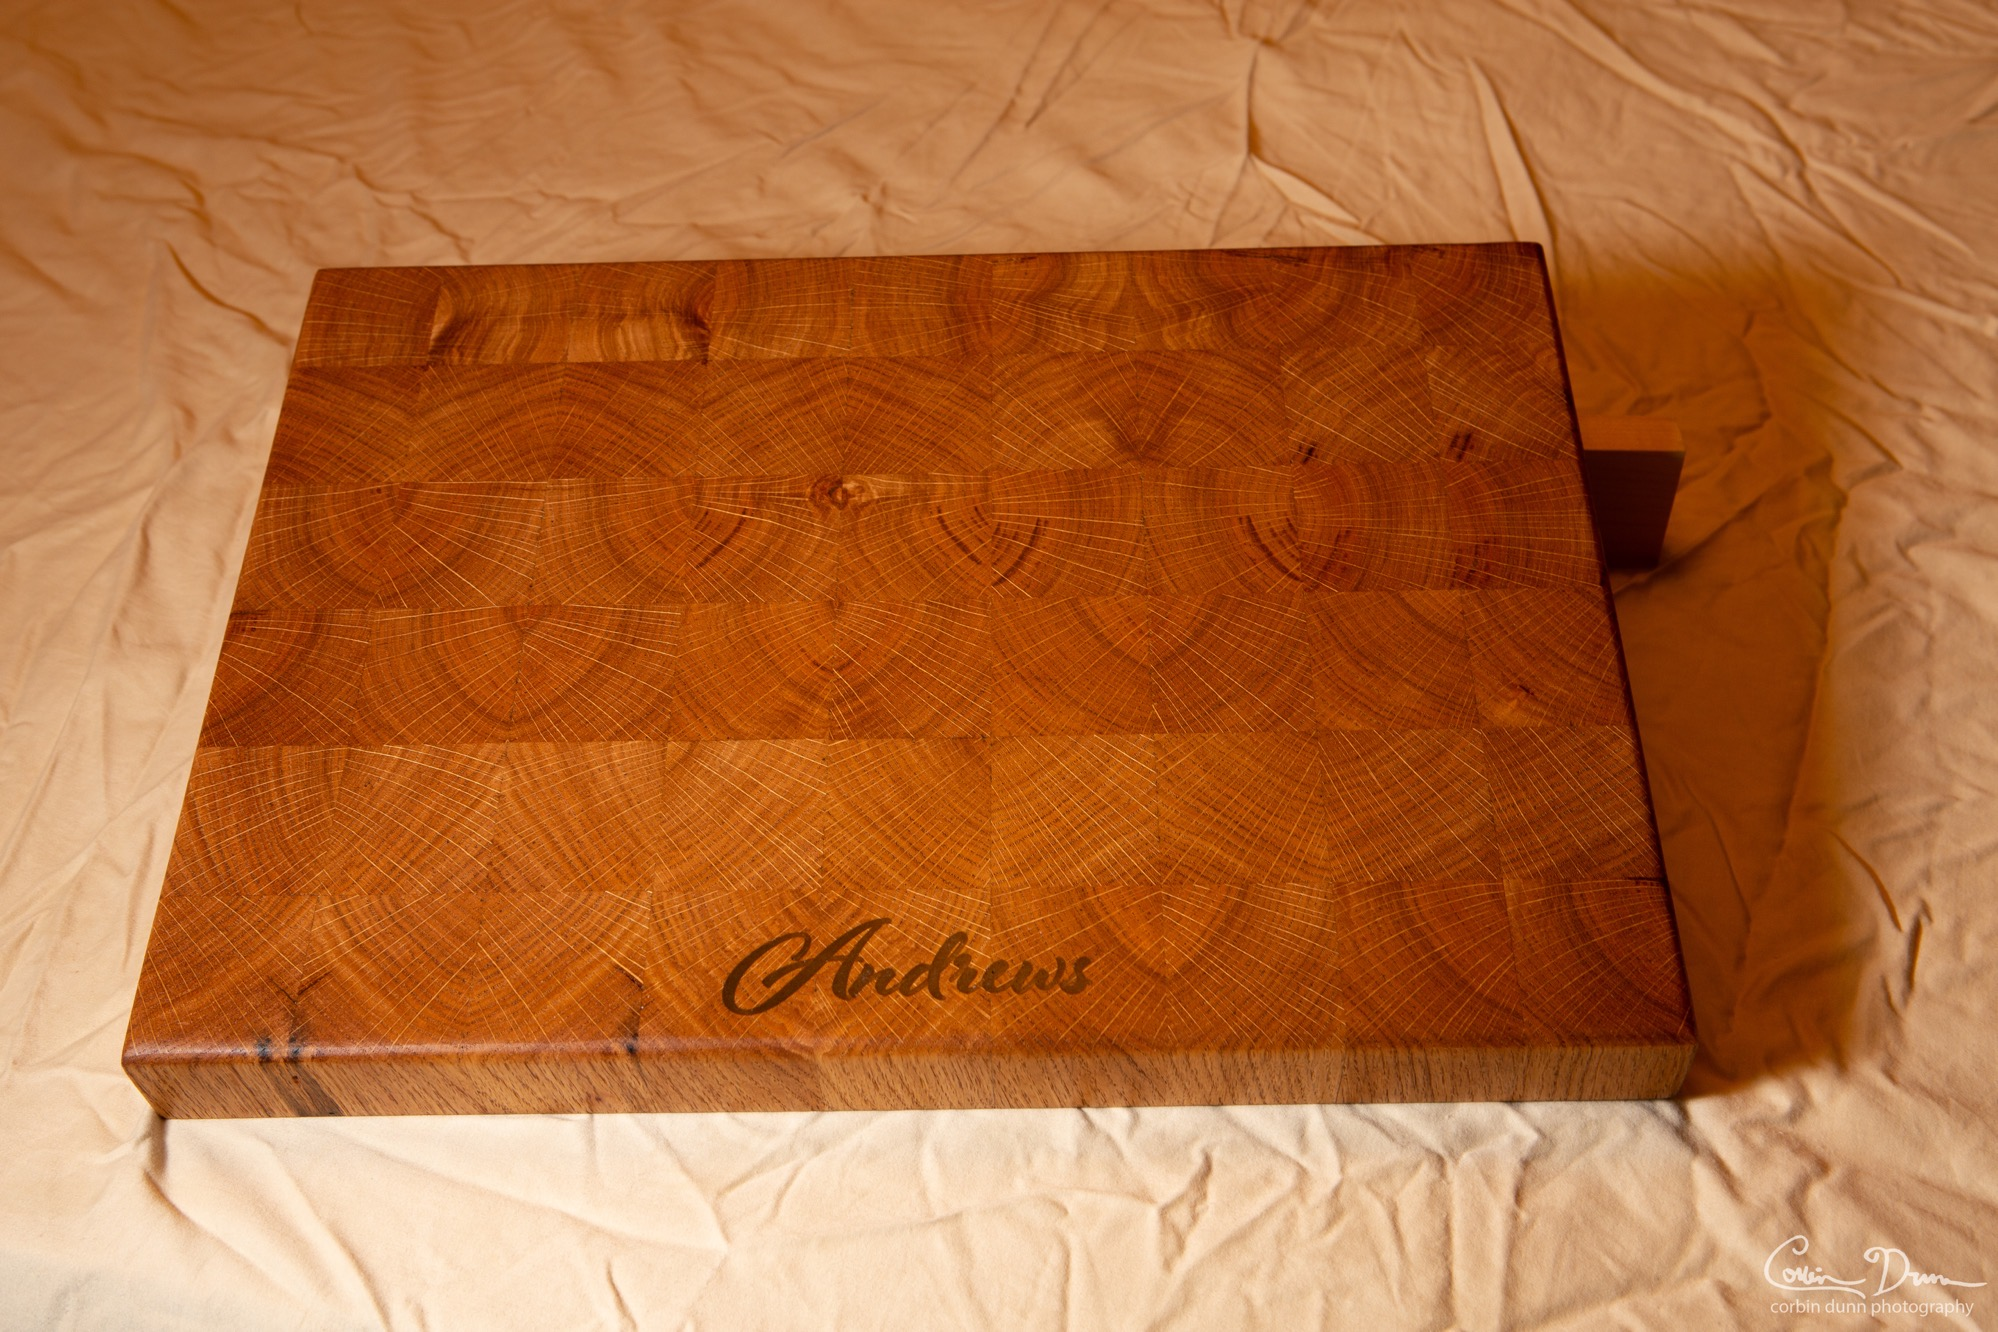 Andrews Epoxy Engraved Cutting Board  UW1A6594